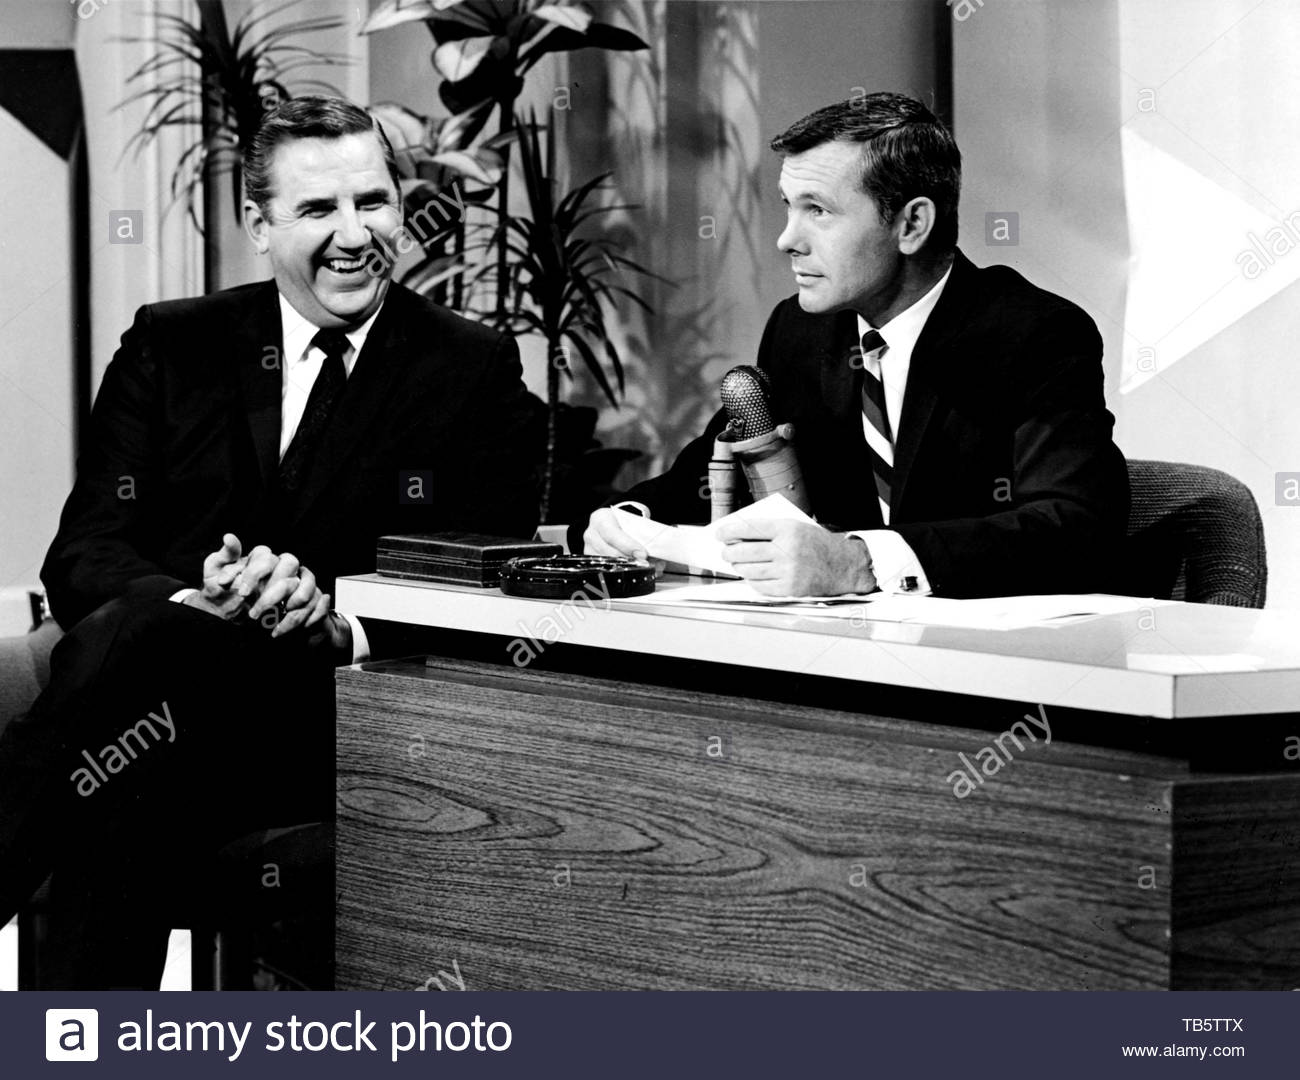 The Tonight Show Stock Photos & The Tonight Show Stock Images - Alamy